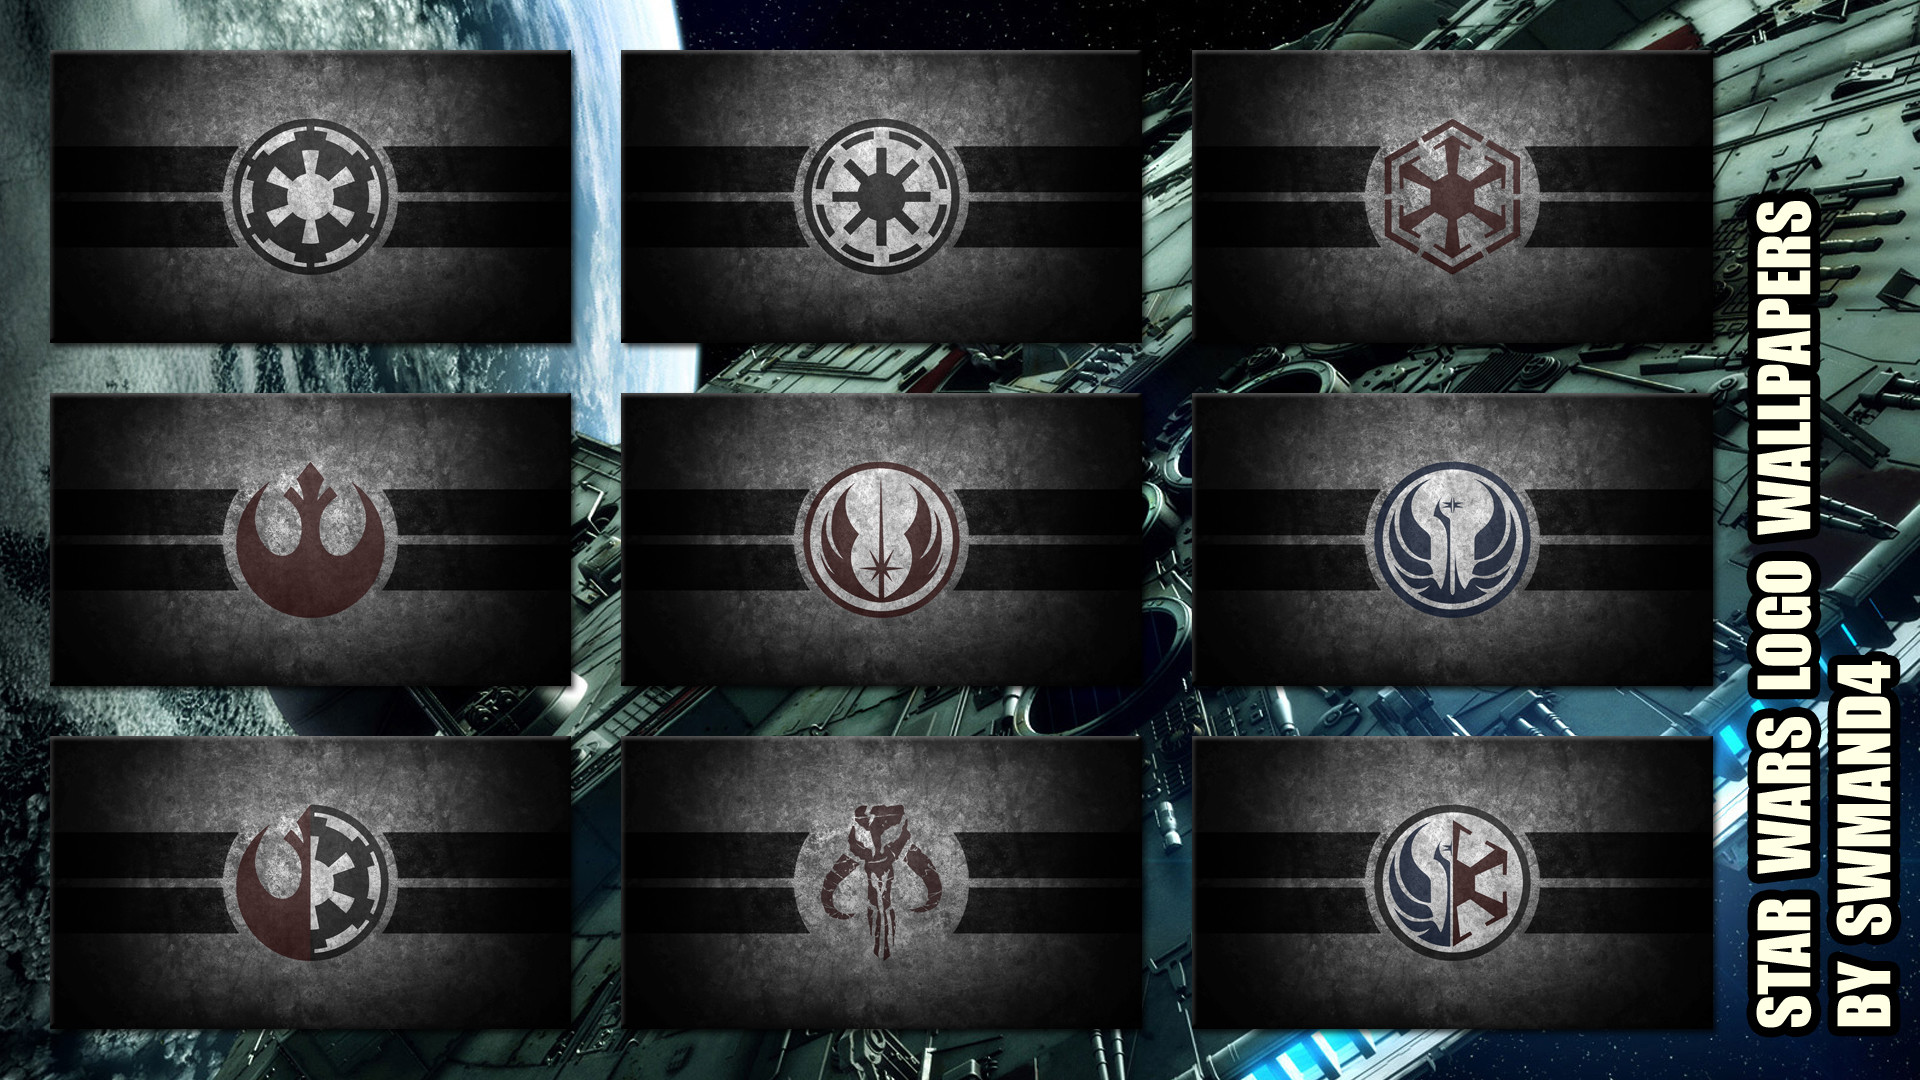 Star Wars Logos Wallpapers by swmand4 Star Wars Logos Wallpapers by swmand4